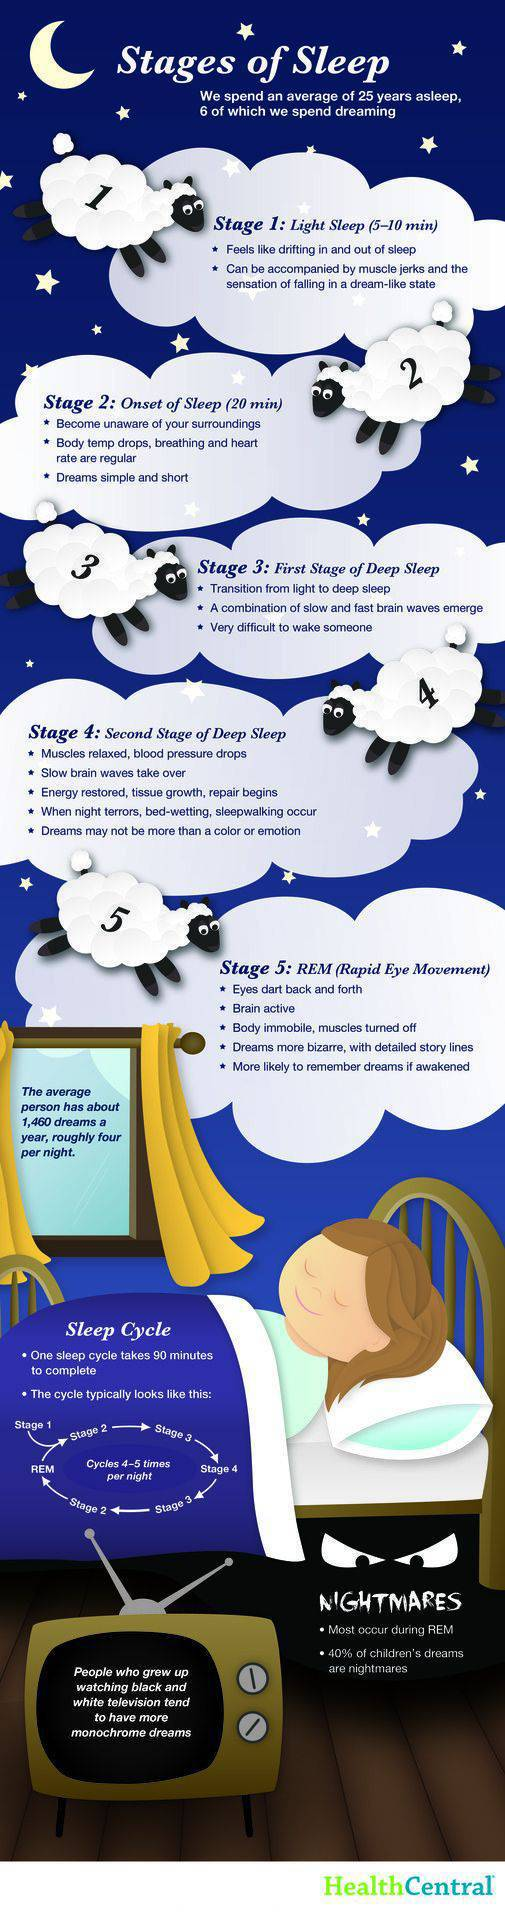 Everything You Ever Needed to Know about Sleep